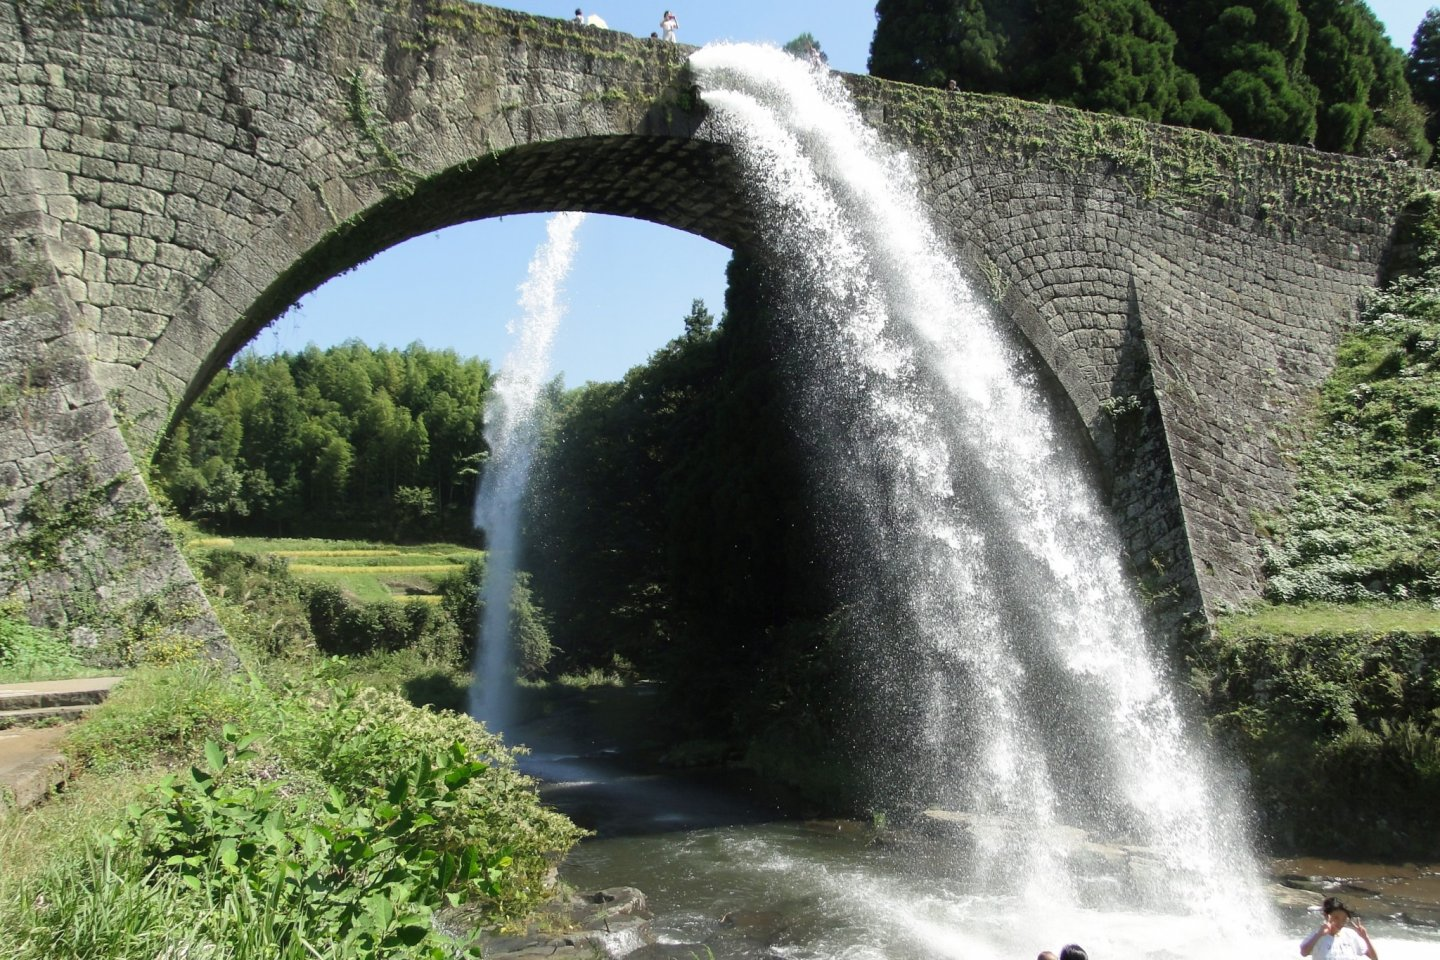 Water pours forth from the Tsjunkyo Aqueduct in rural Kumamoto